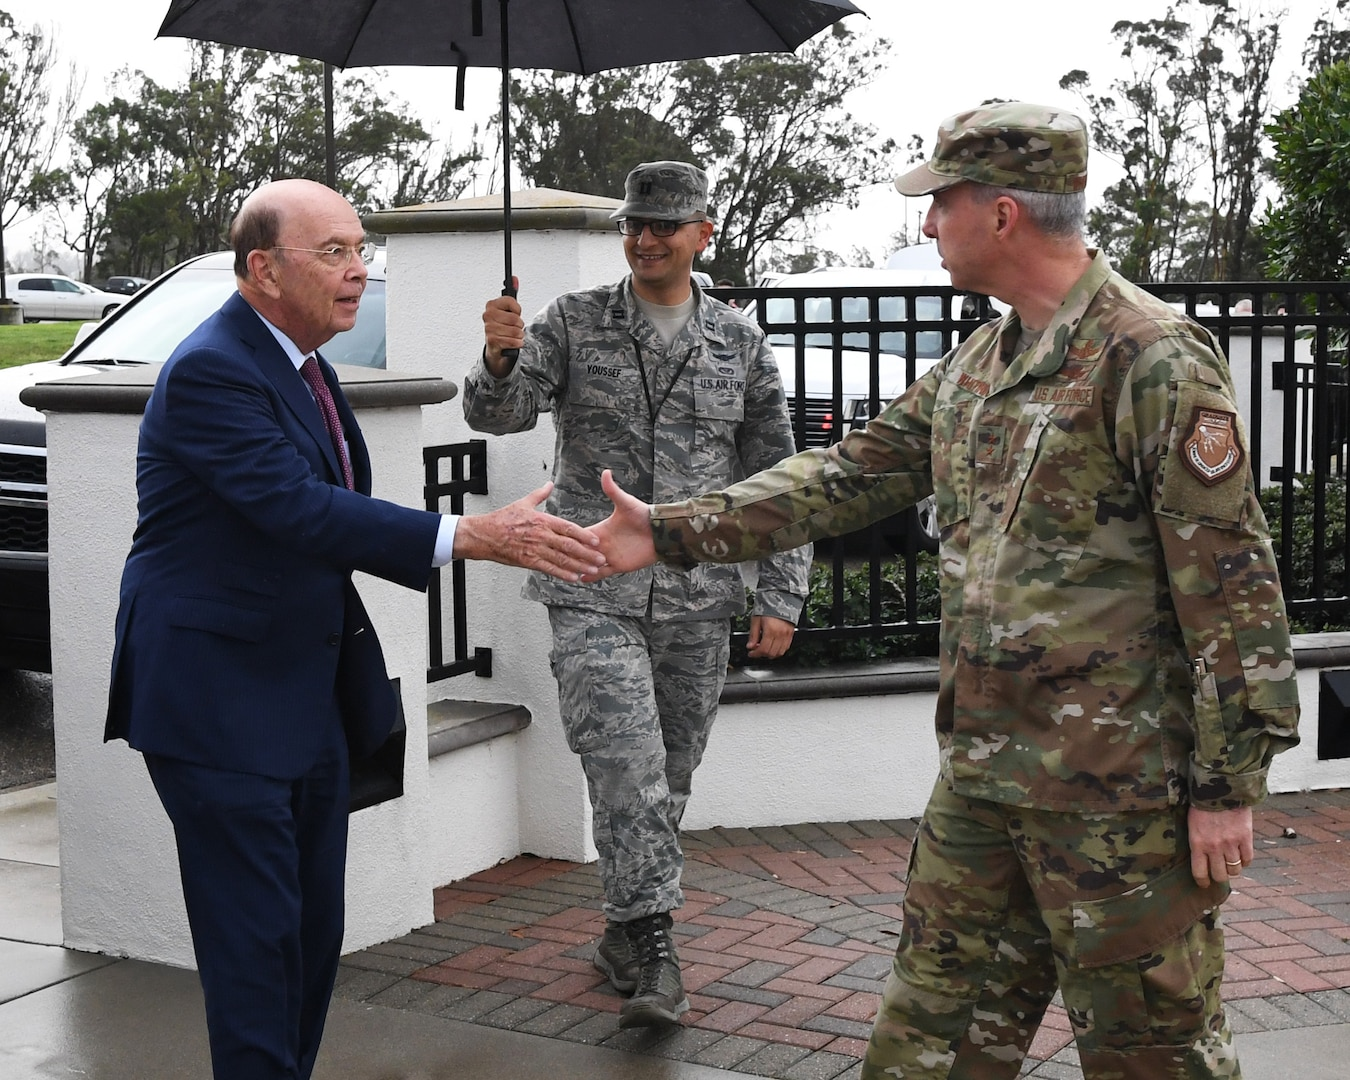 Deputy Joint Force Space Component Commander Maj. Gen. Stephen Whiting (right) greets U.S. Secretary of Commerce Wilbur Ross (left) during a visit at Vandenberg AFB, Calif., Nov. 29, 2018. Secretary Ross met with service members from the 18th Space Control Squadron, Combined Space Operations Center, Joint Force Space Component Command and U.S. Strategic Command to discuss Space Situational Awareness capabilities and space operations during a visit here Nov. 29-30. Secretary Ross also spoke with service members about the Department of Defense transitioning non-military aspects of Space Situational Awareness and space safety monitoring and responsibilities to the Department of Commerce. (U.S. Air Force photo by Maj. Cody Chiles)